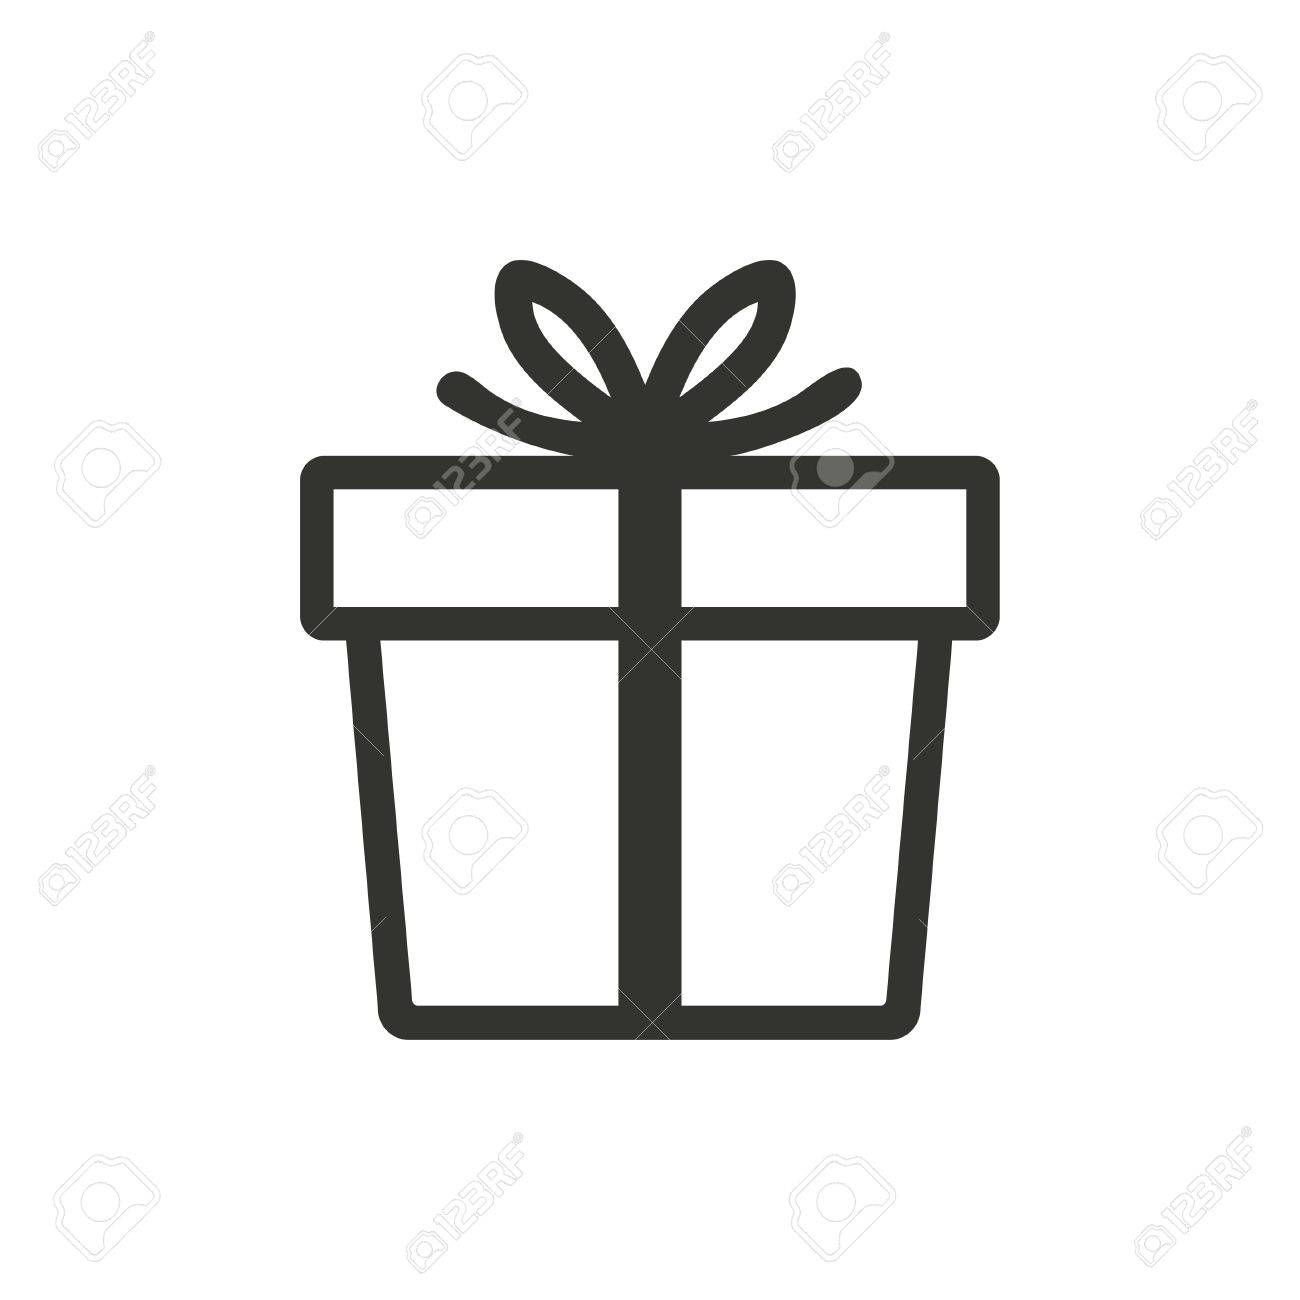 Gift box icon on white background vector illustration royalty free gift box icon on white background vector illustration stock vector 49687083 negle Image collections